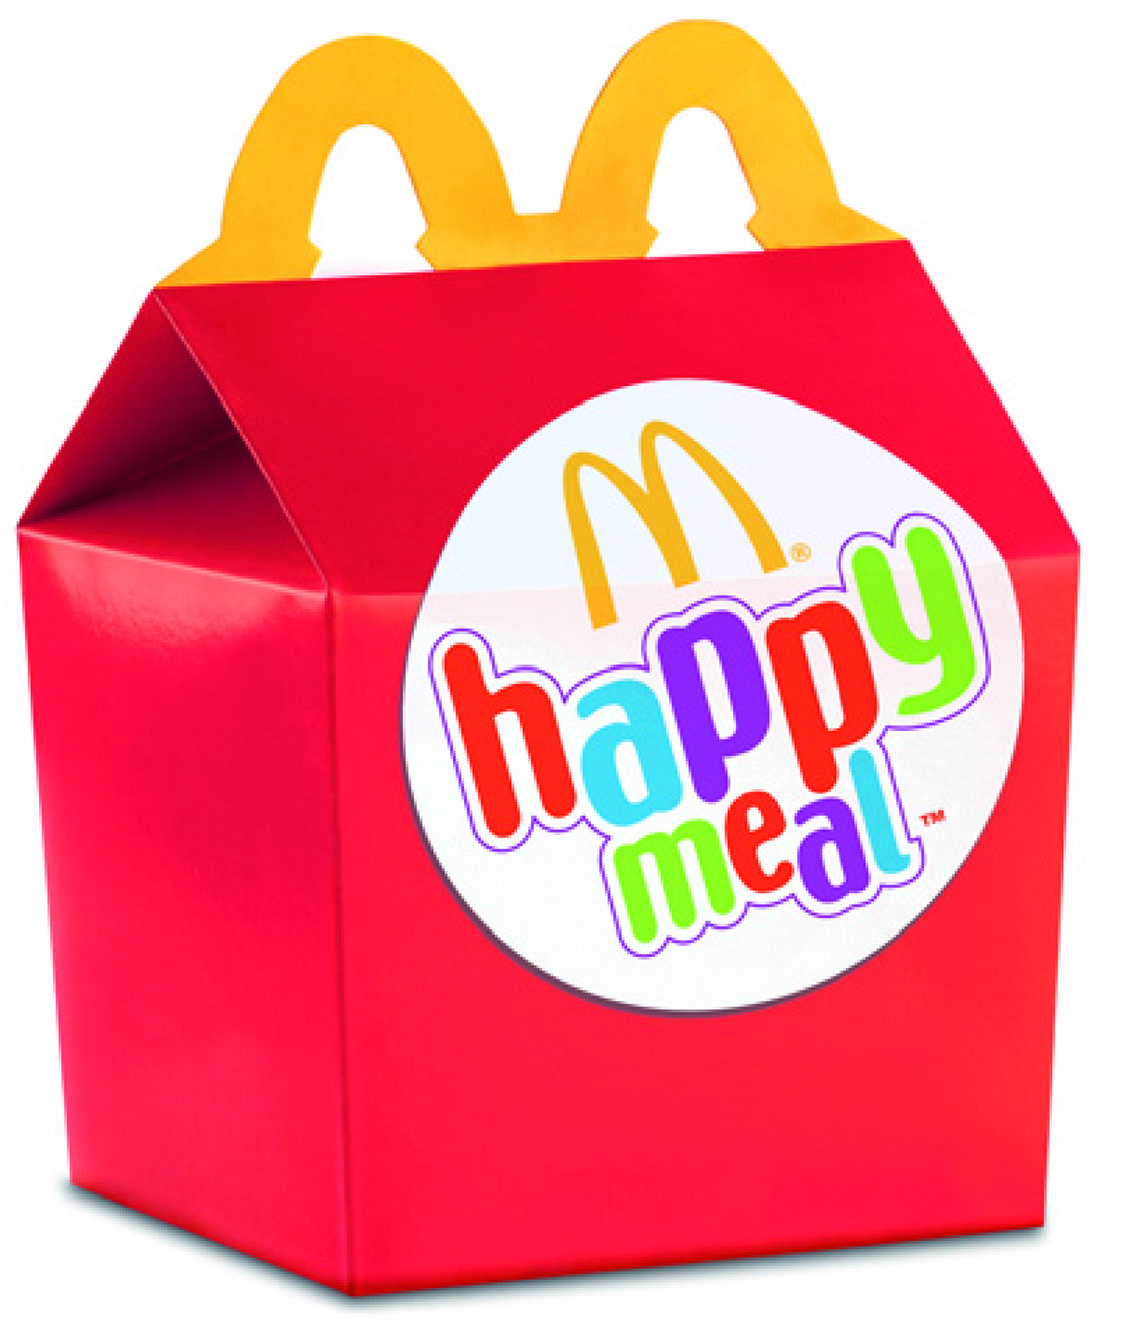 Image Result For Mcdonalds Happy Meal Happy Meal Mcdonalds Happy Meal Box Happy Meal